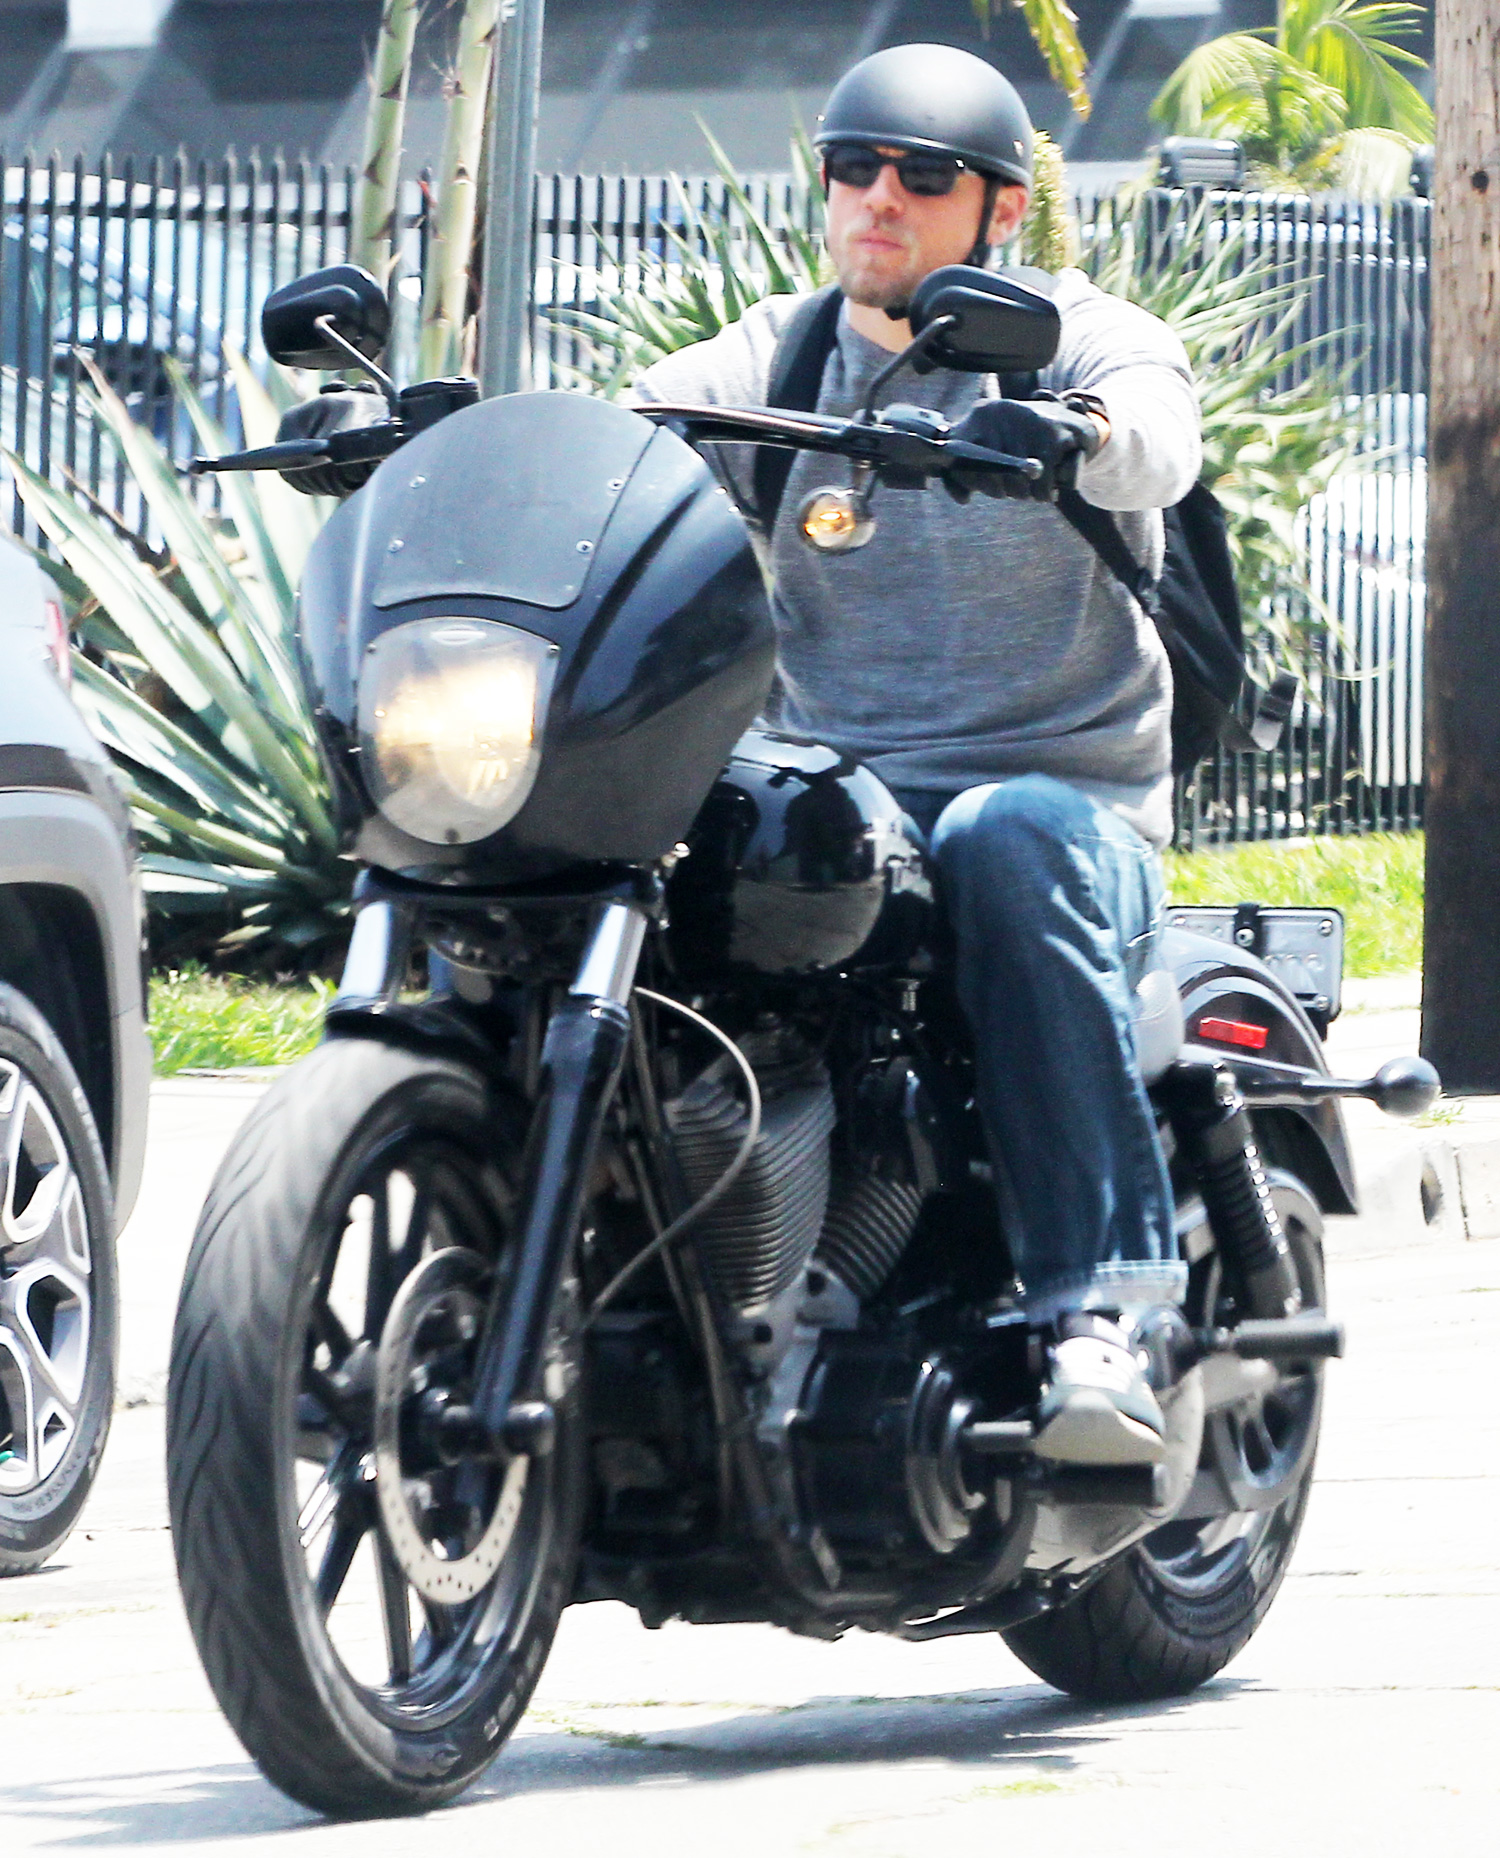 EXCLUSIVE: Charlie Hunnam, star of latest movie 'King Arthur: Legend of the Sword' and the 'Sons of Anarchy' TV series rides his Harley Davidson motorcycle while running errands in Los Angeles